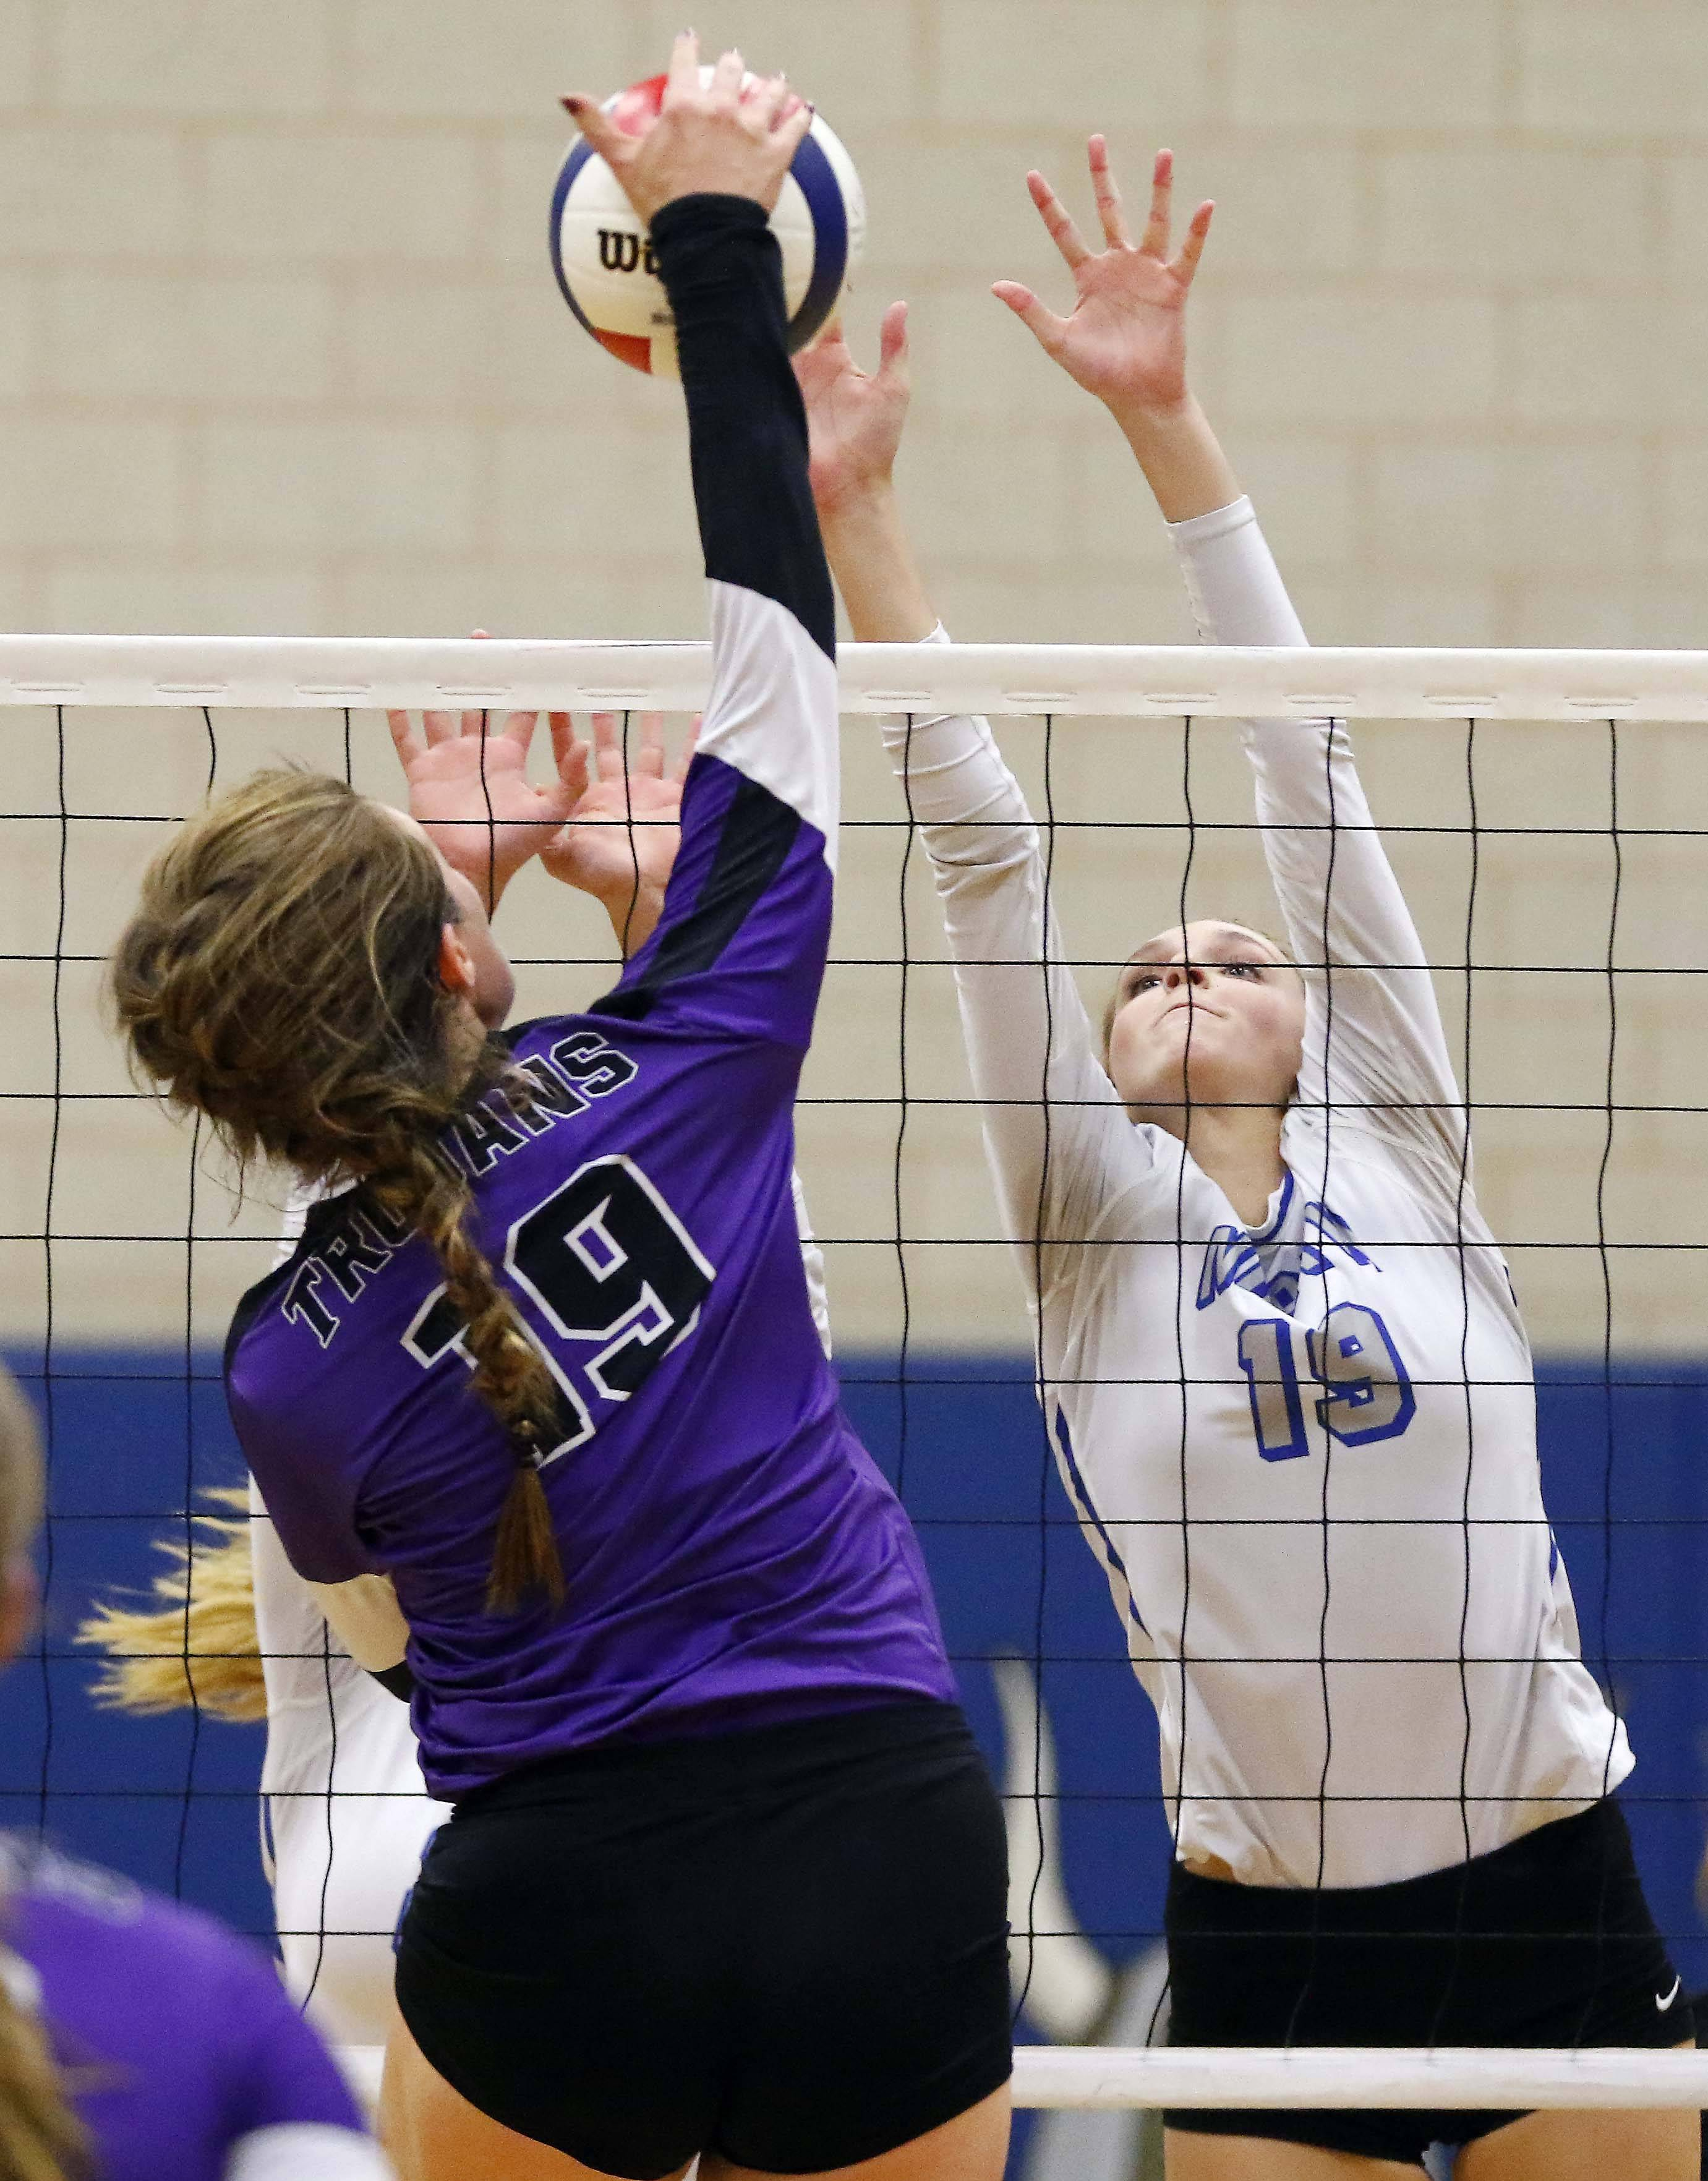 Downers Grove North's Jade Casper (19) hits the ball past St. Charles North's Abigail Graham (19) Friday in the Geneva volleyball supersectional.